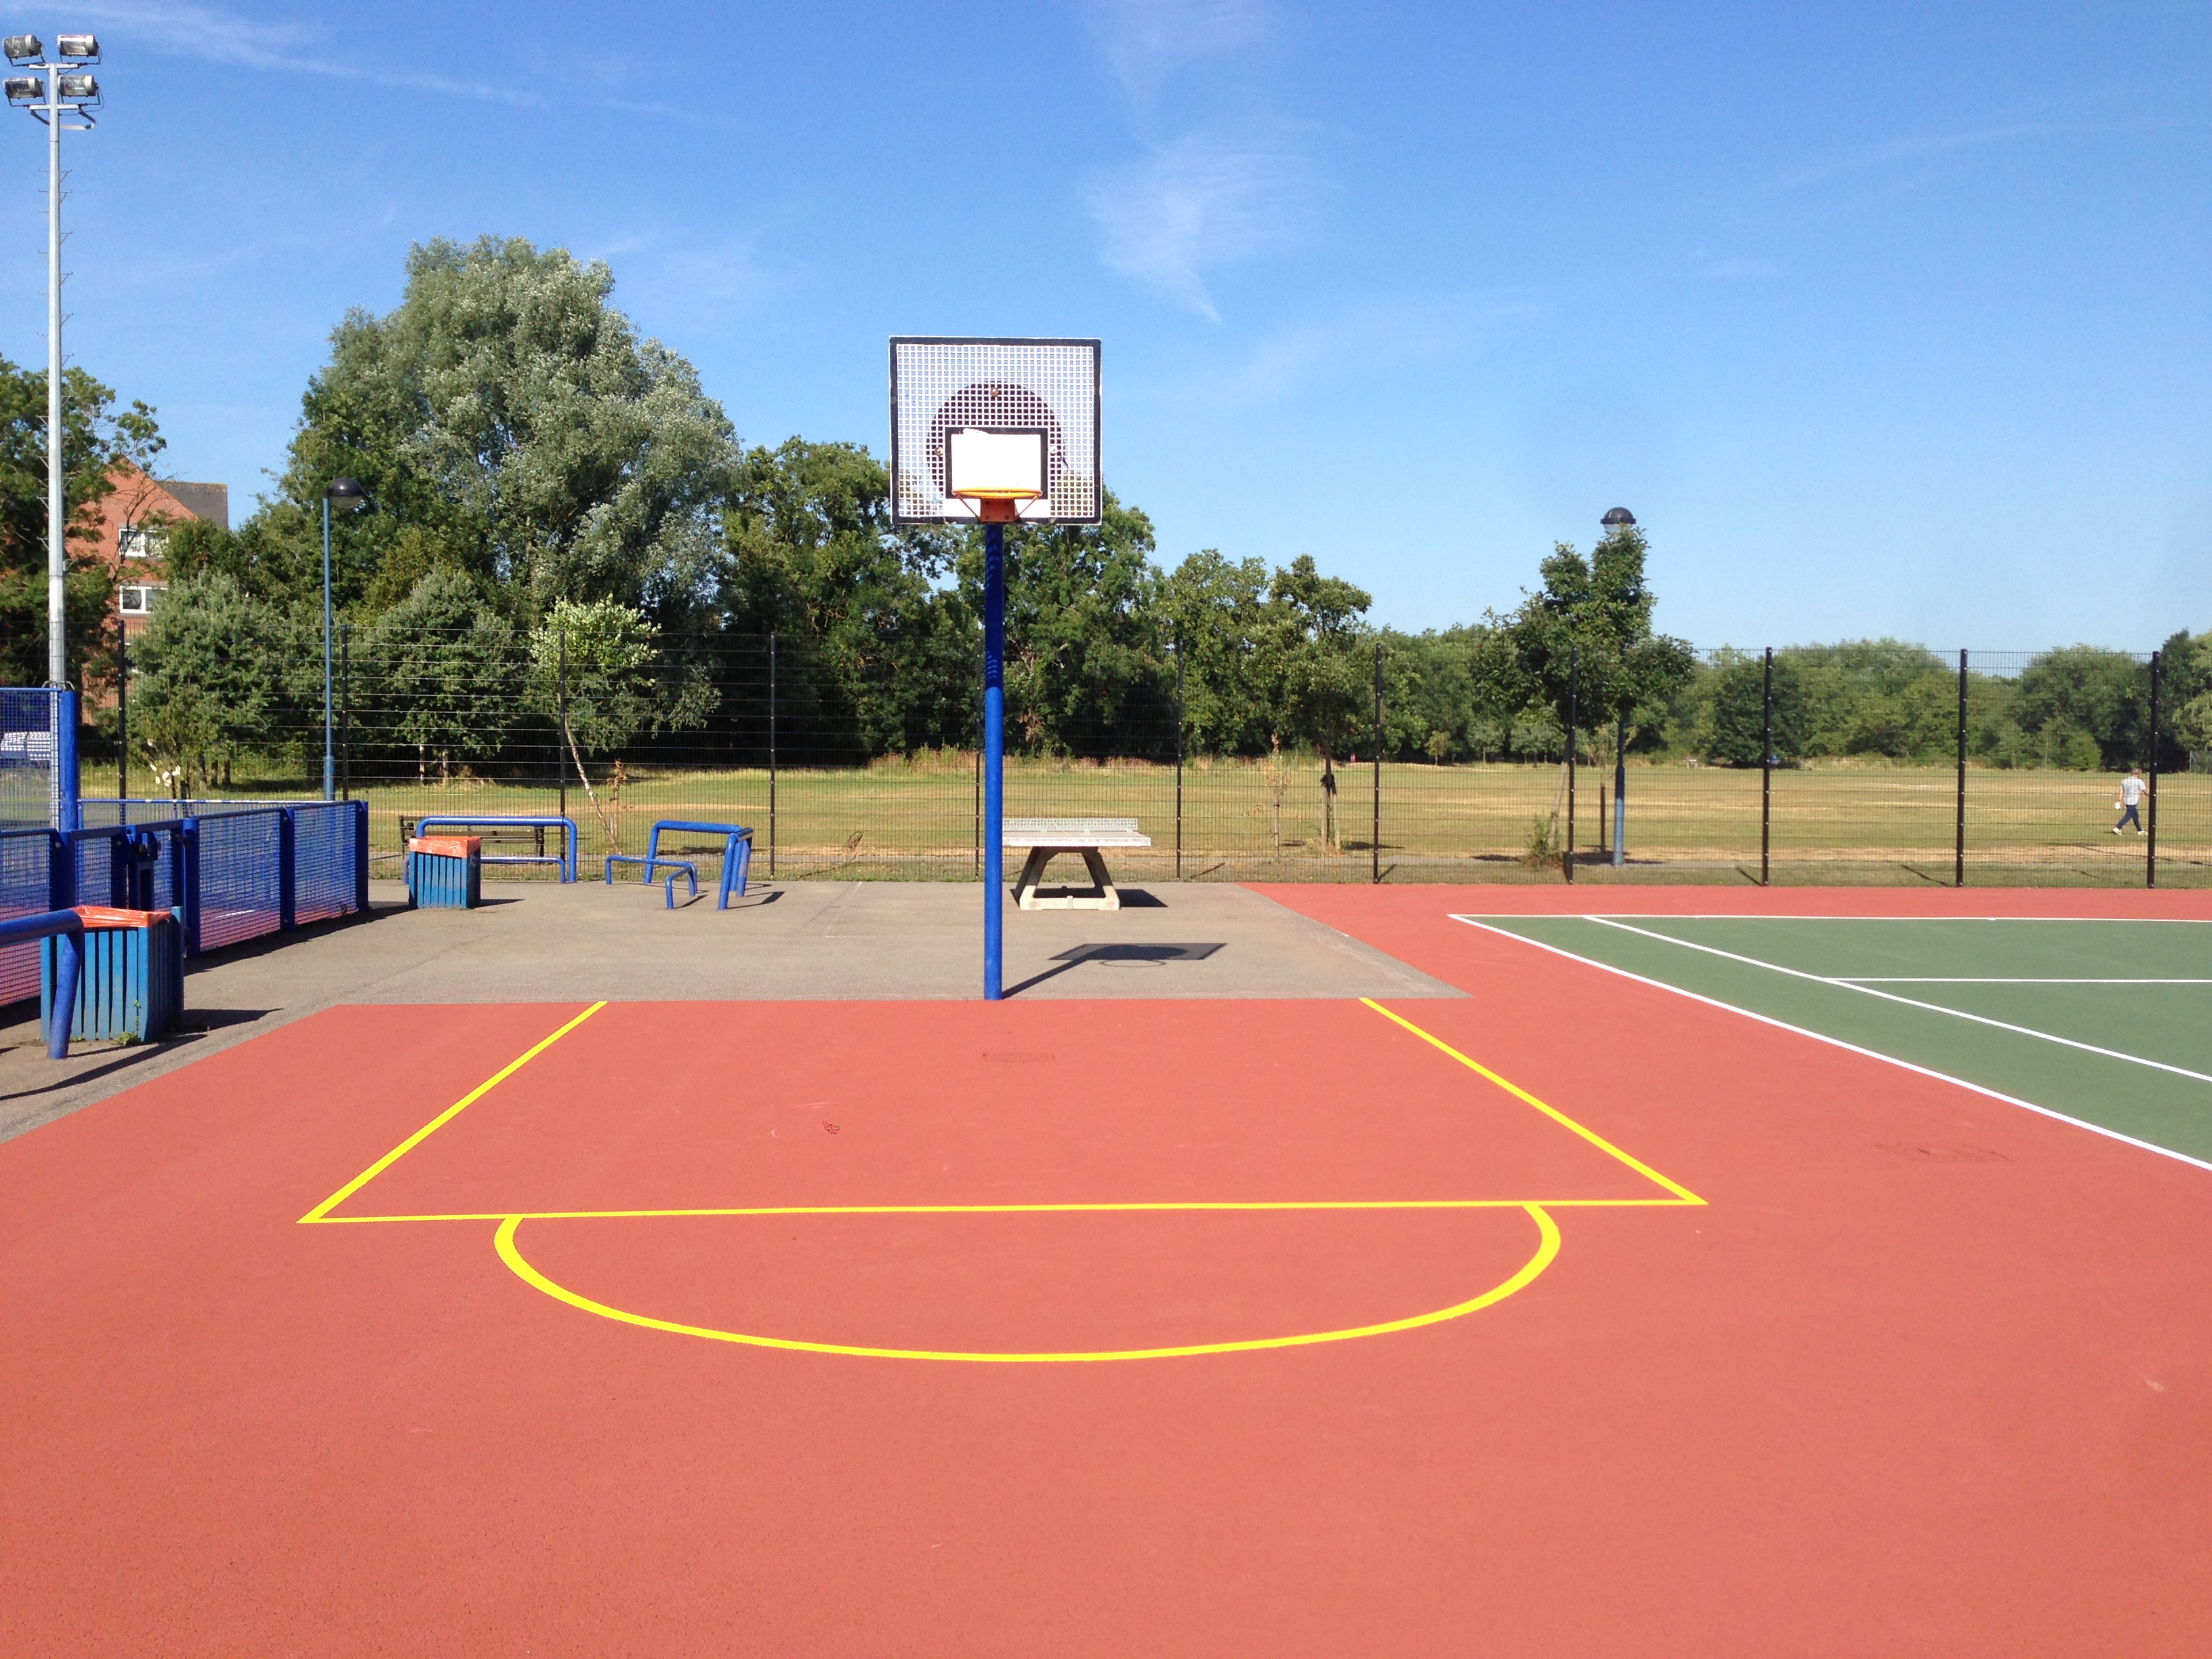 Macadam surfacing specification tarmac court designs for Basketball court installation cost